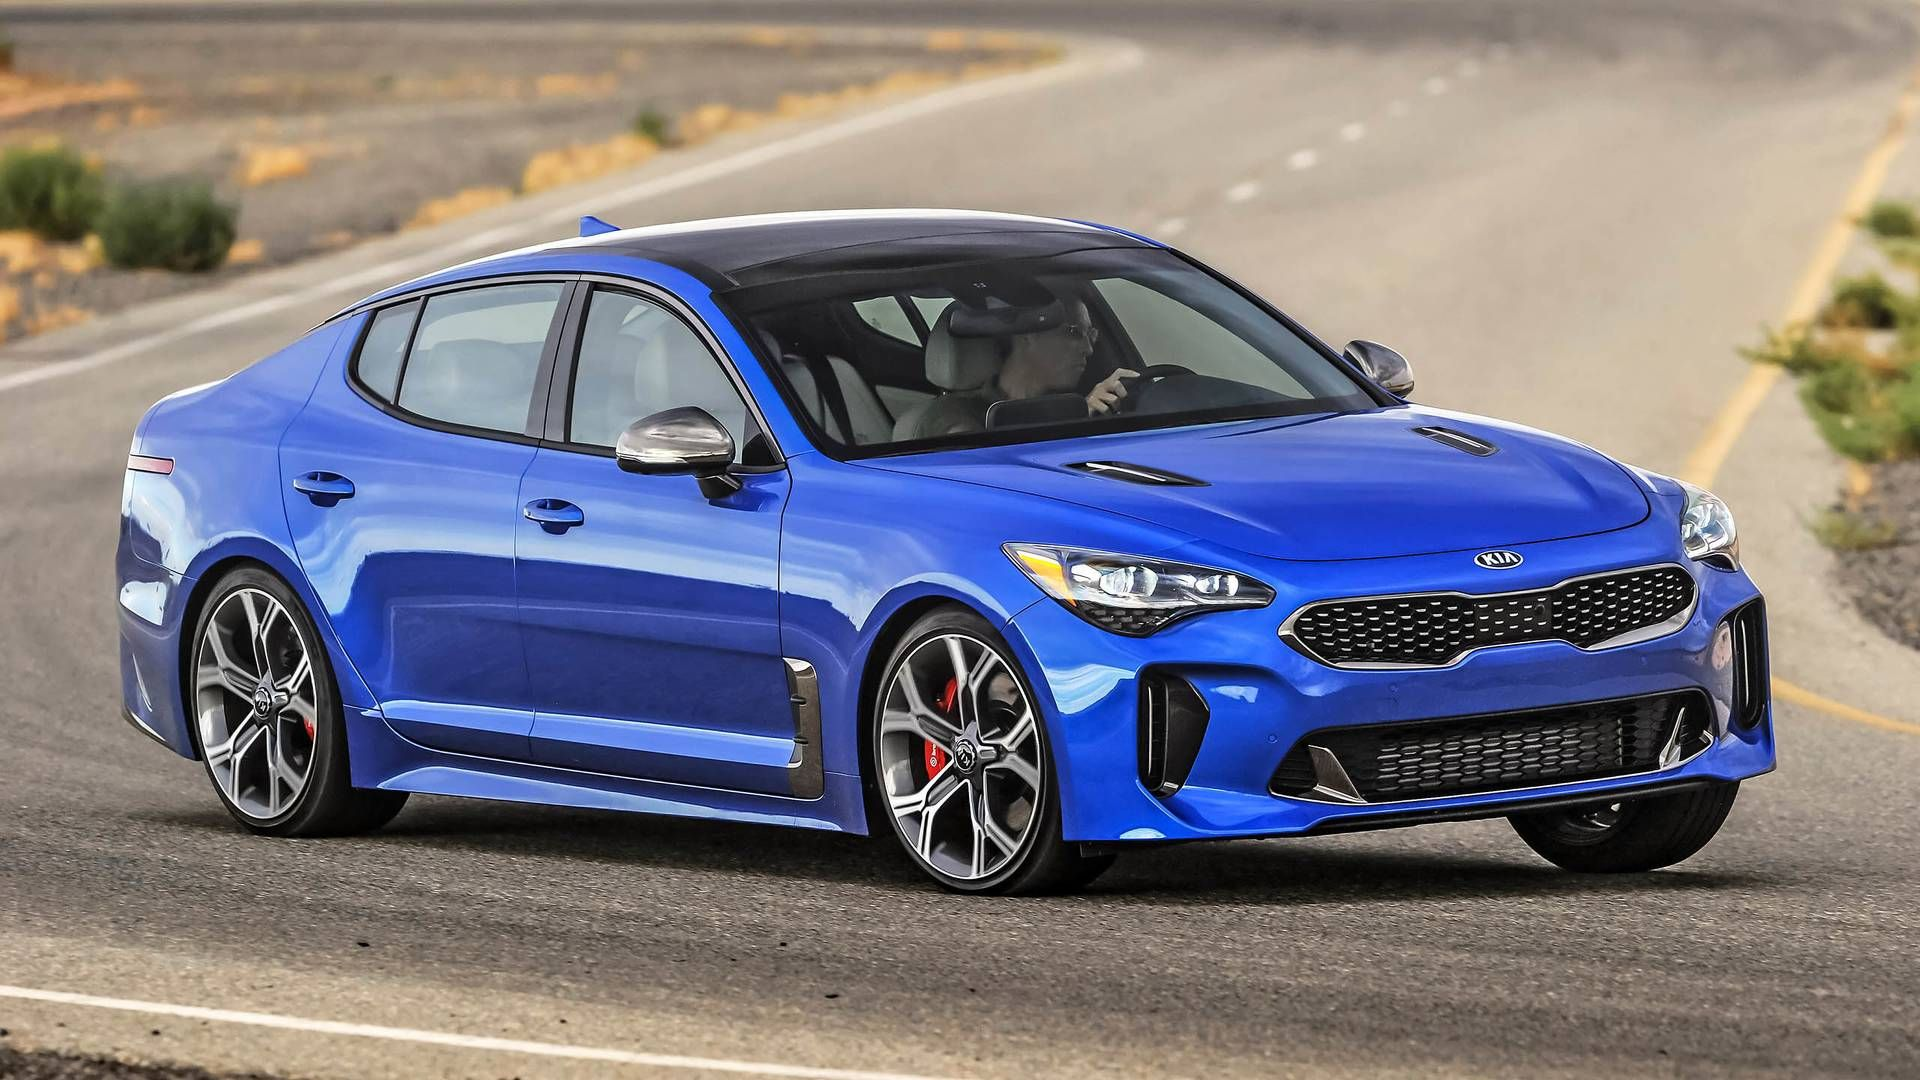 Kia Stinger Gt South African Pricing Kia Stinger Kia Kia Motors